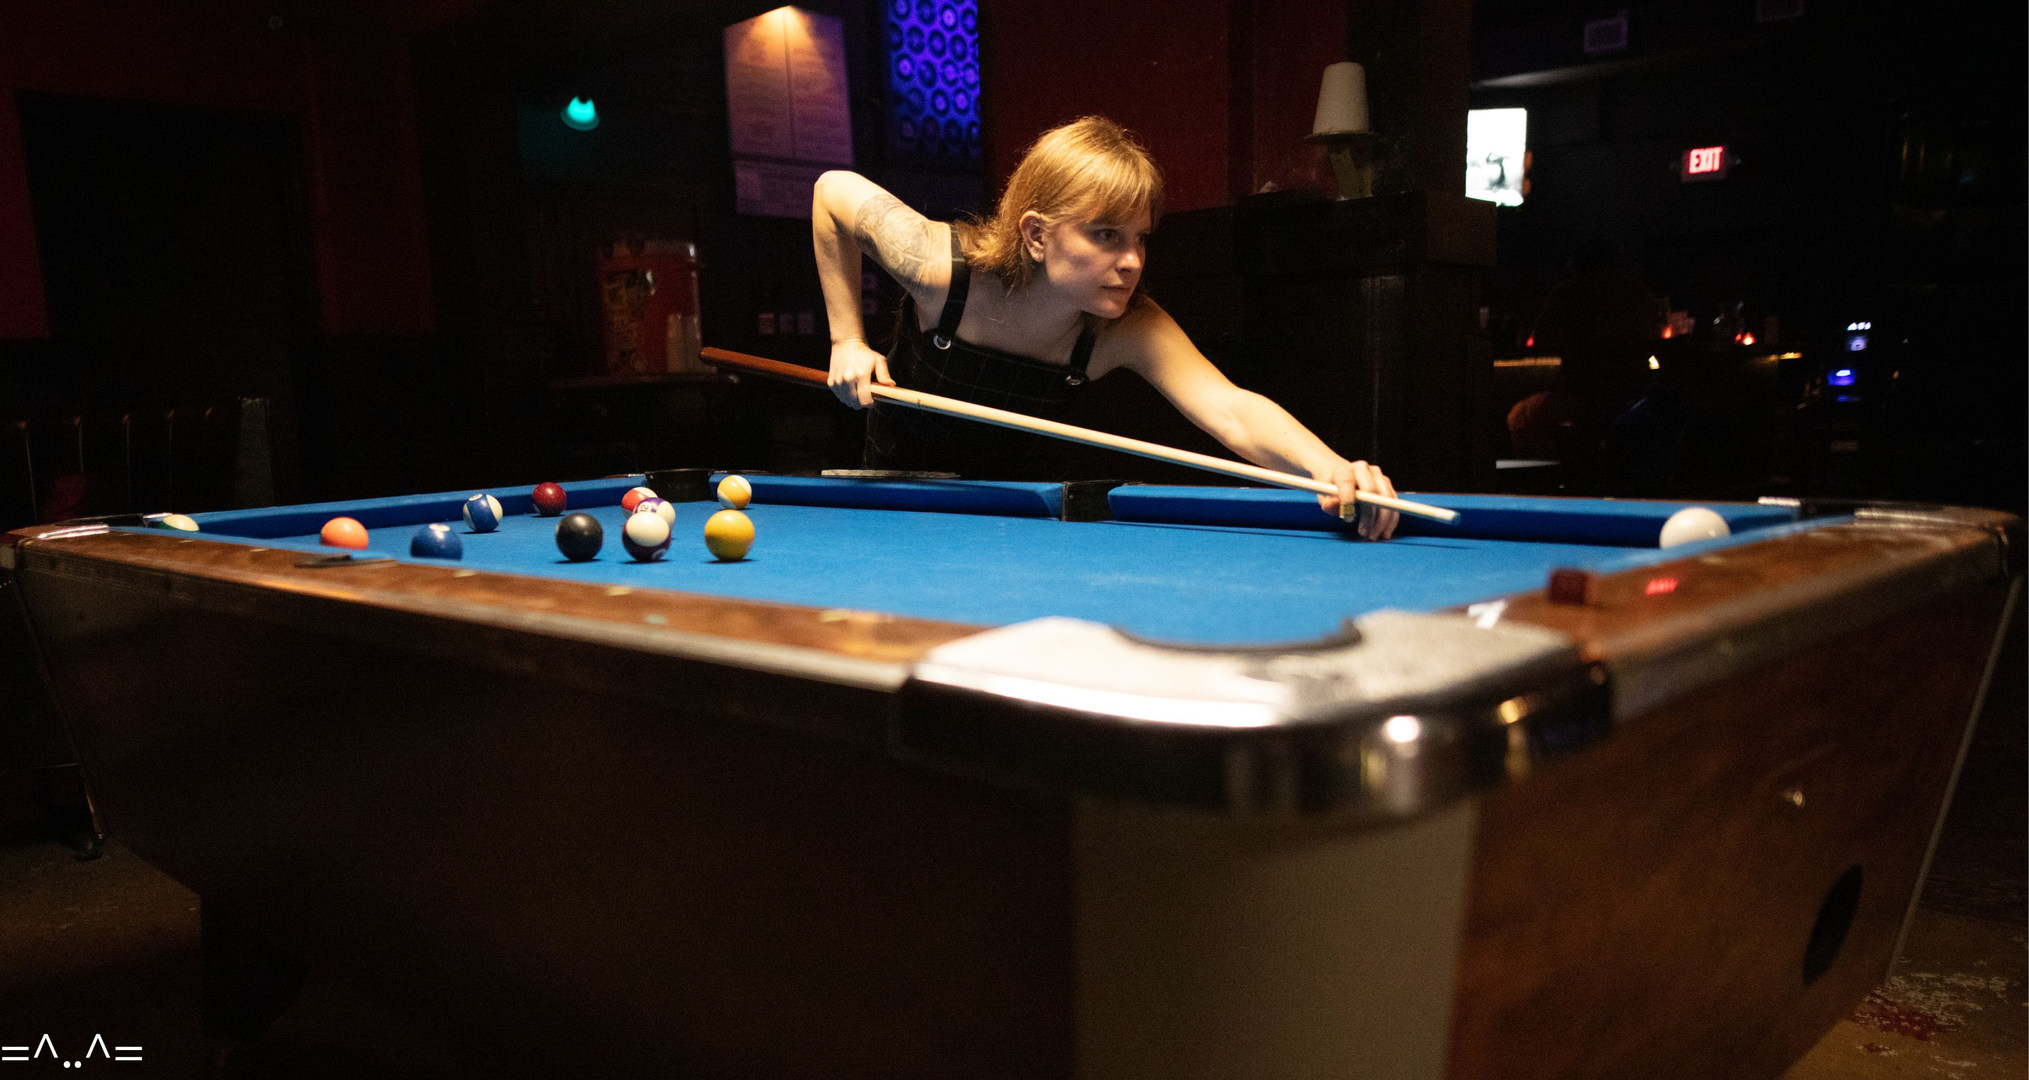 Two pool tables to practice your game, with FREE pool every Tuesday!